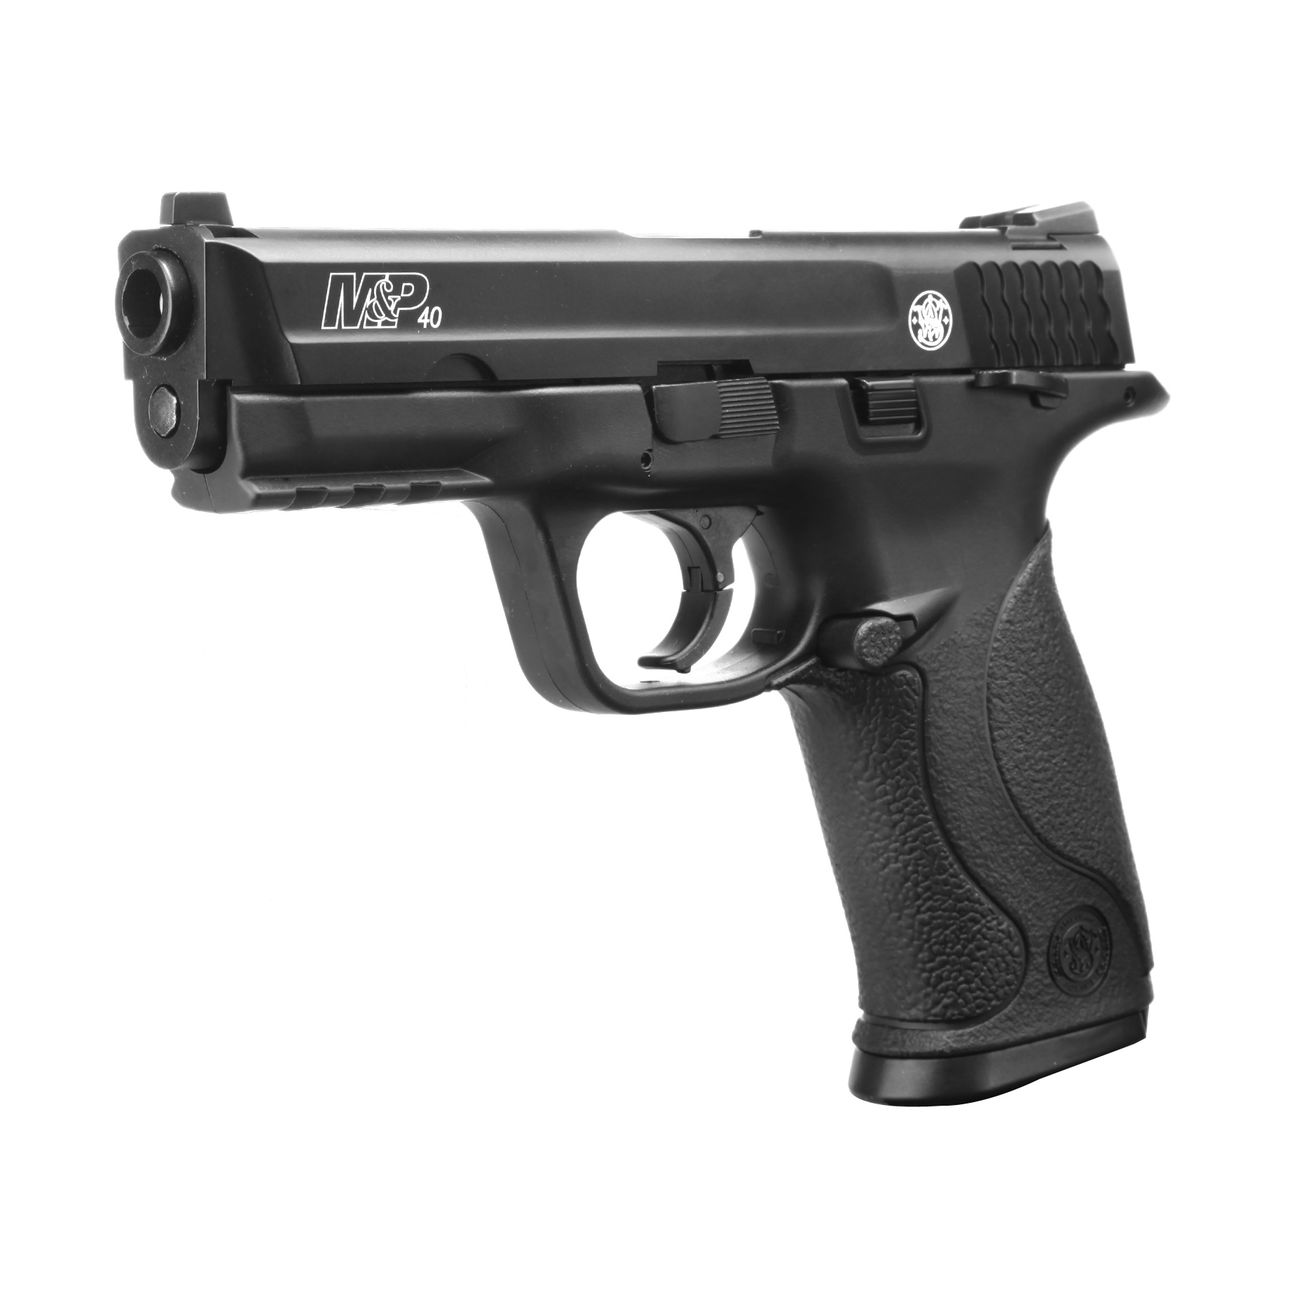 Smith & Wesson M&P40 TS CO2 Luftpistole Blow Back 4,5mm Stahl BB brüniert 1